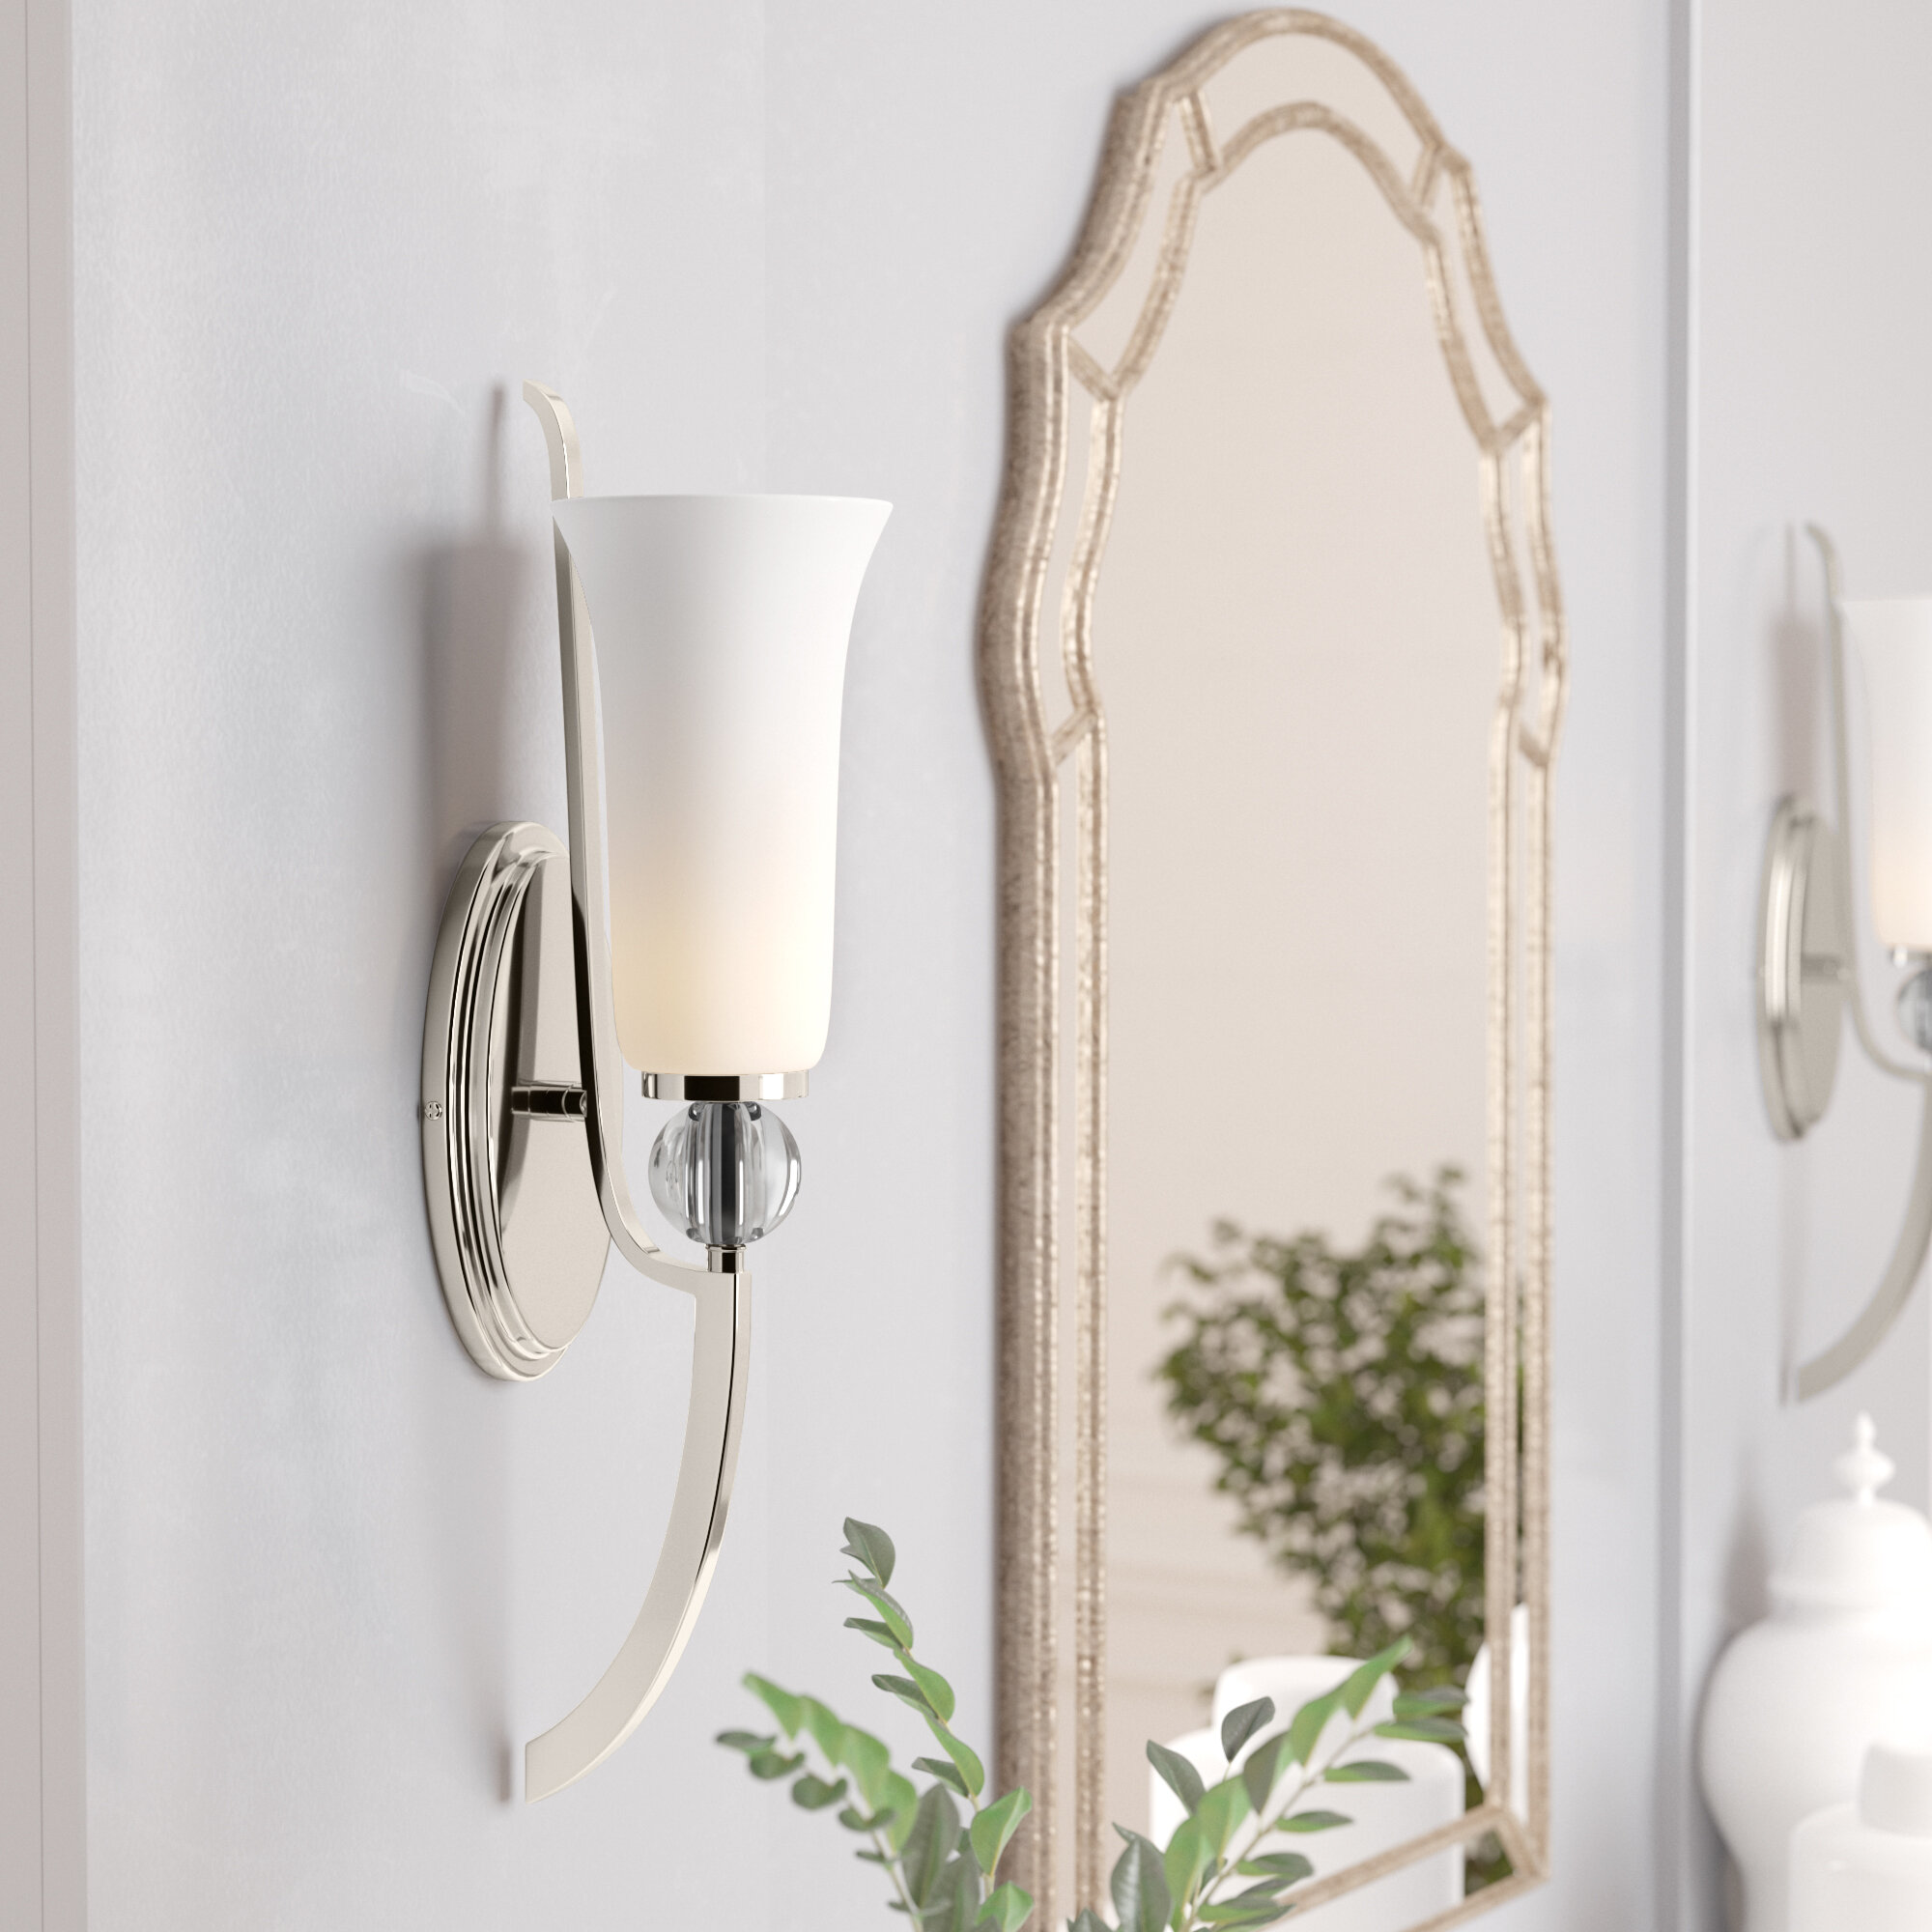 Red Barrel Studio Macced 1-Light Bath Sconce & Reviews | Wayfair